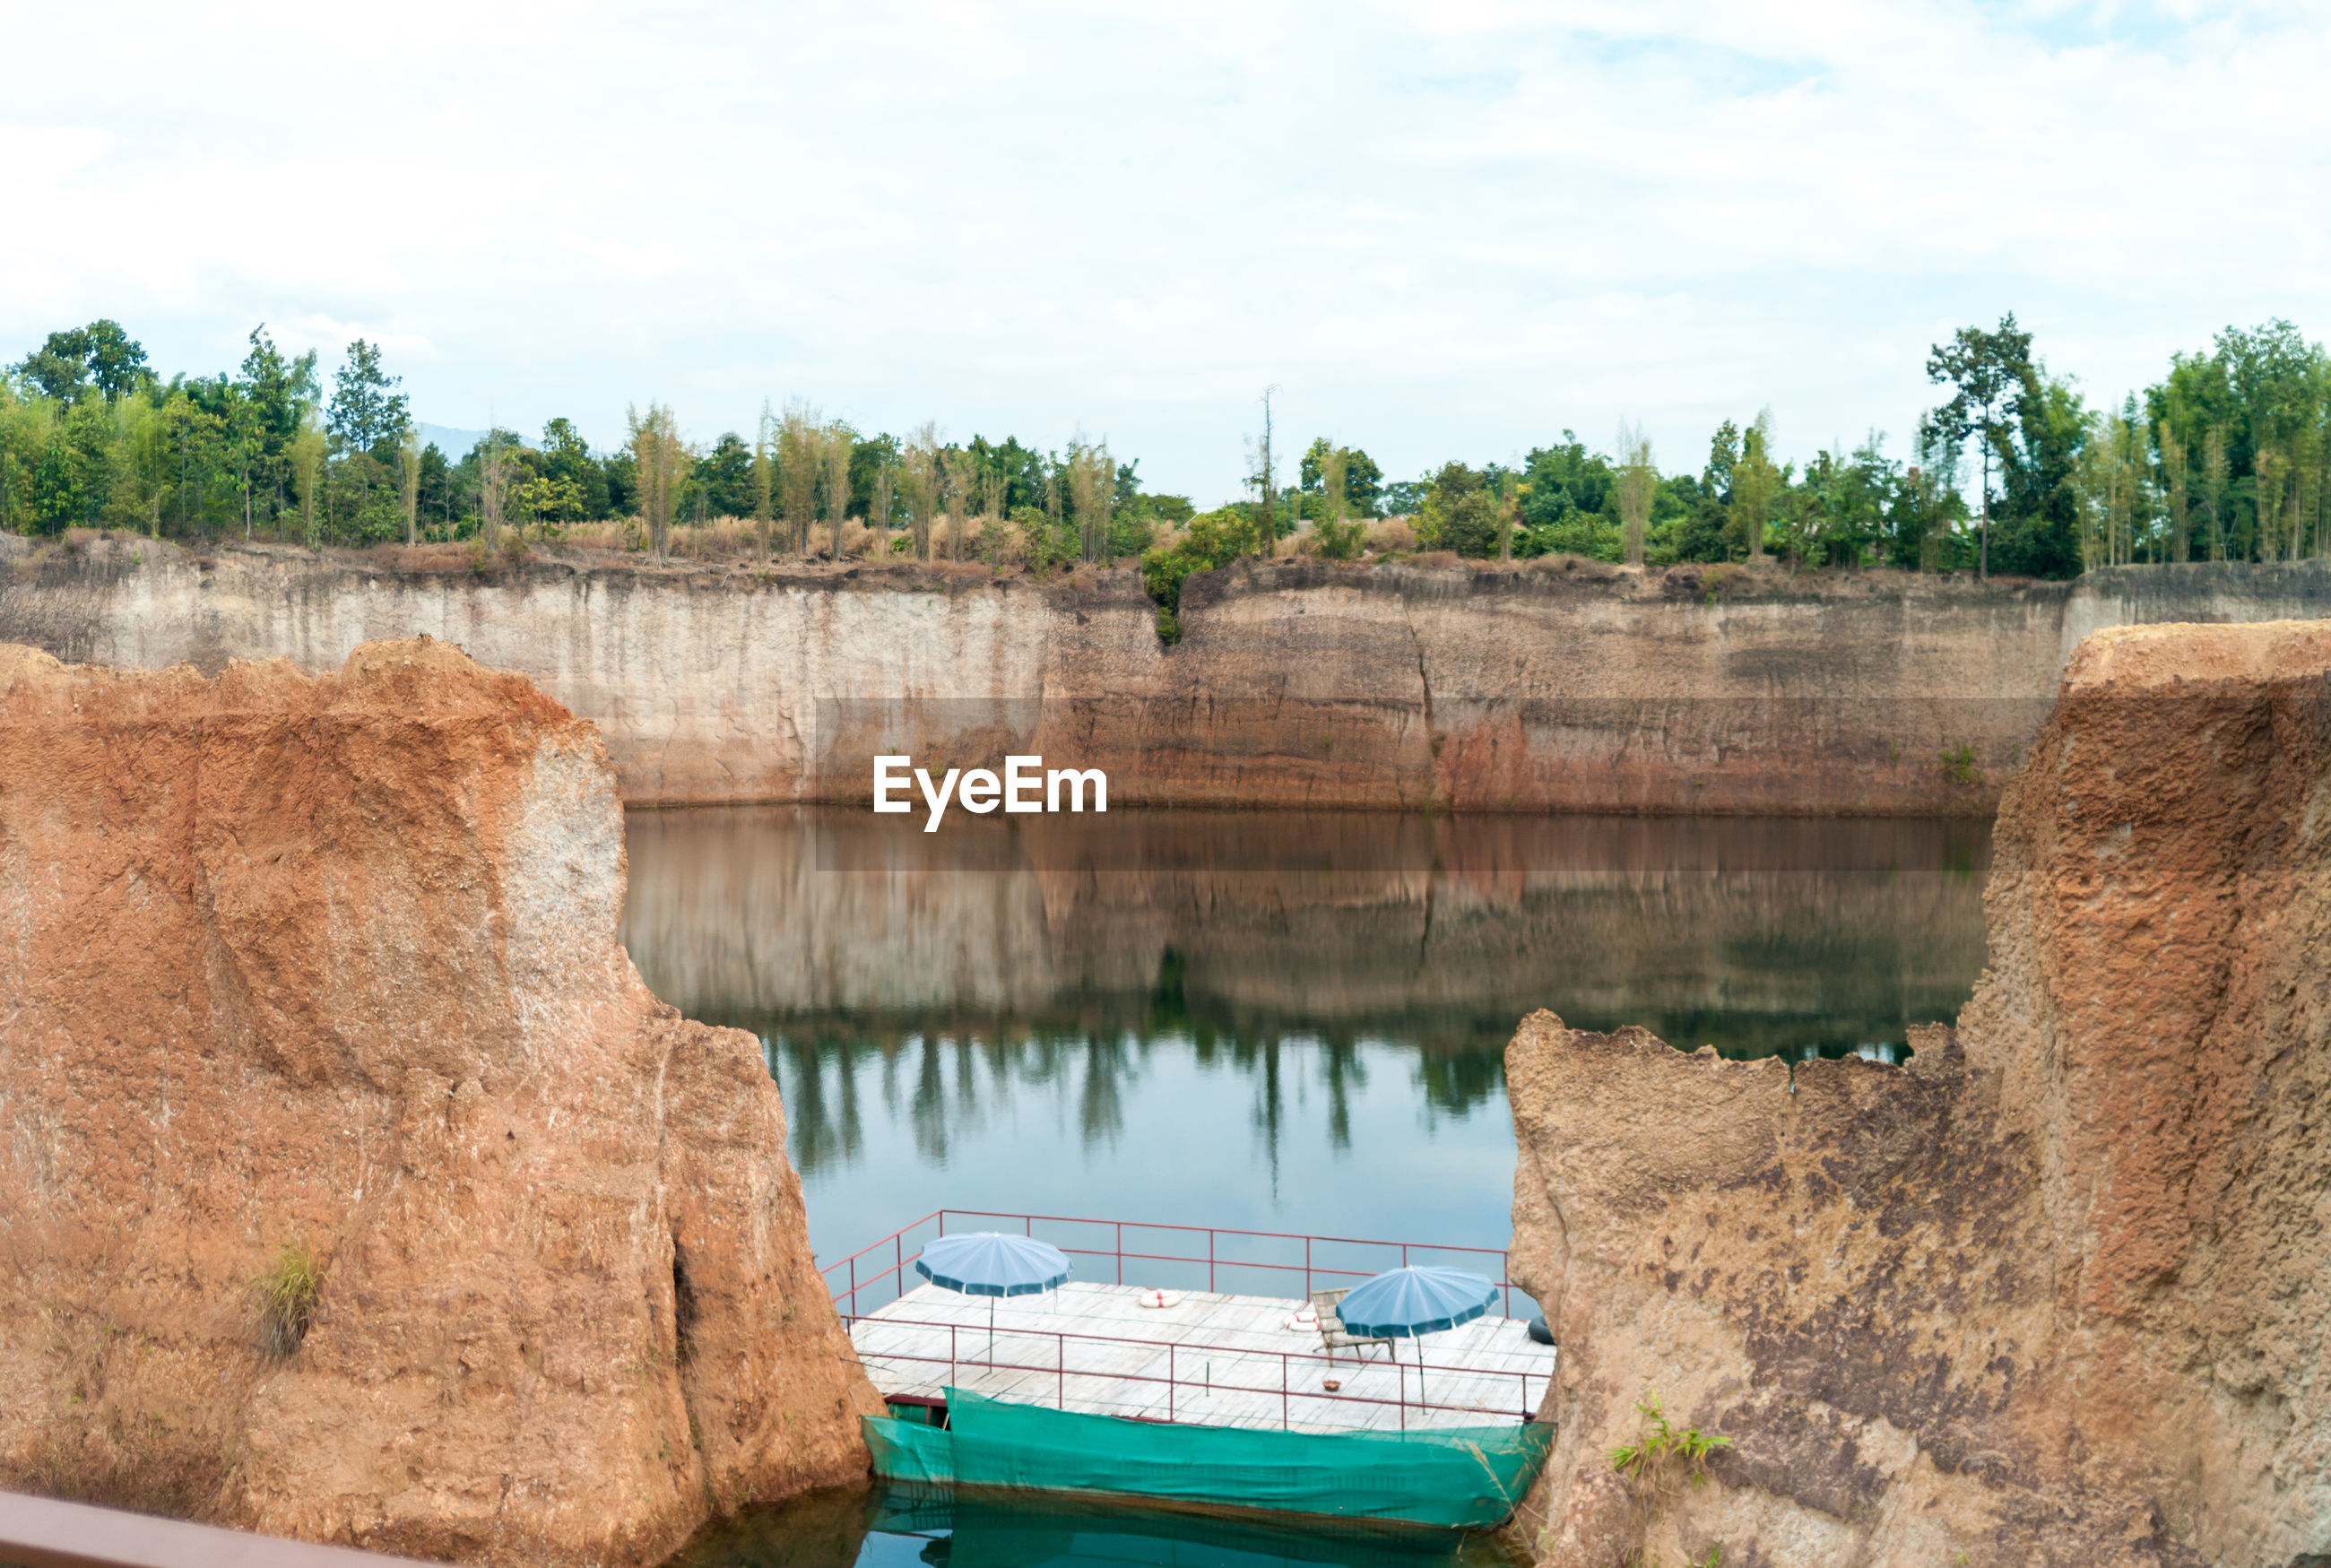 SCENIC VIEW OF DAM ON RIVERBANK AGAINST SKY